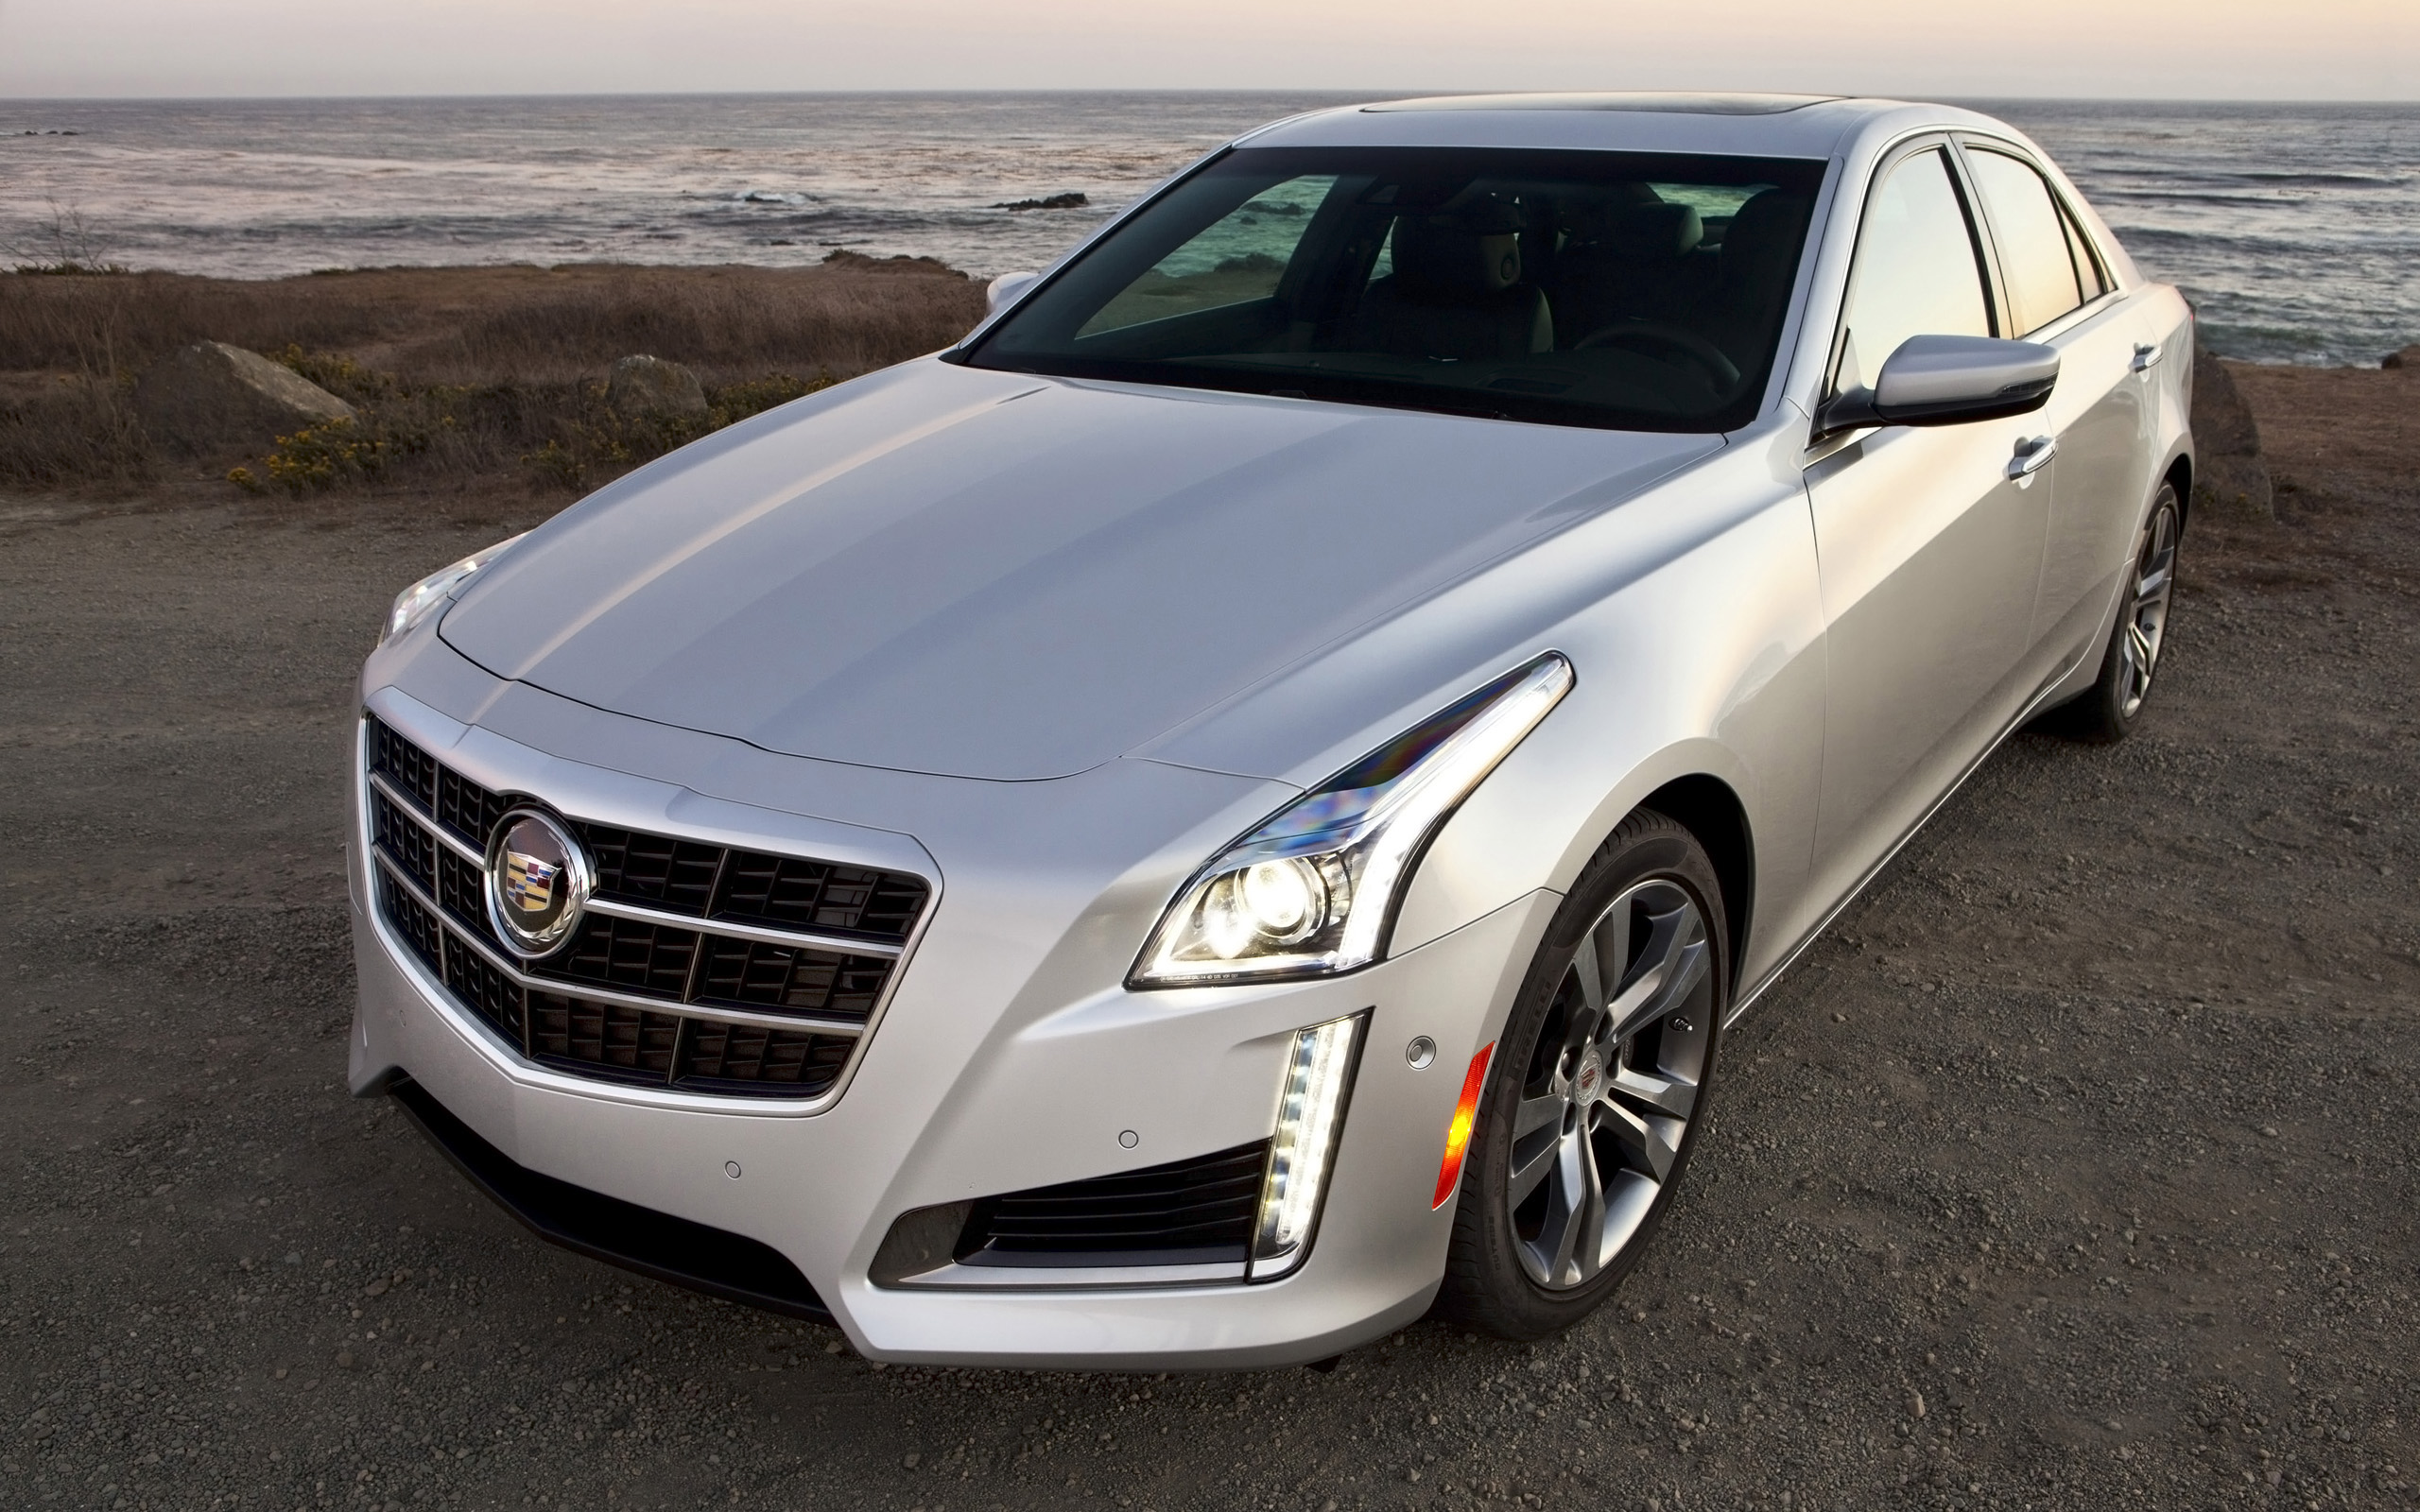 2014 cadillac cts vsport sedan luxury e wallpaper 2560x1600 156051. Cars Review. Best American Auto & Cars Review